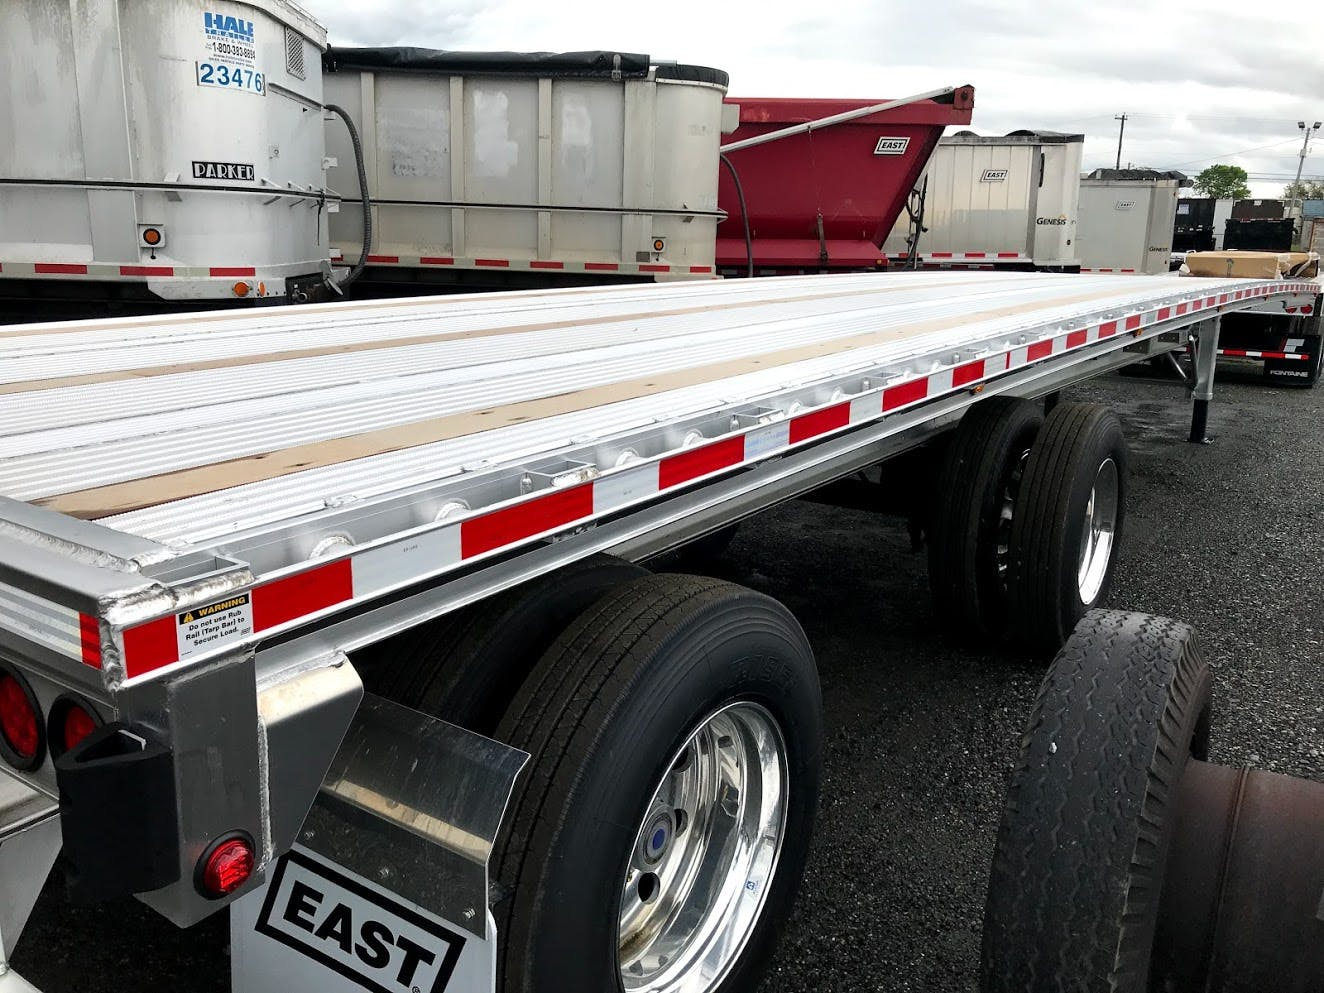 2020 EAST ALUMINUM FLATBED TRAILER #643526